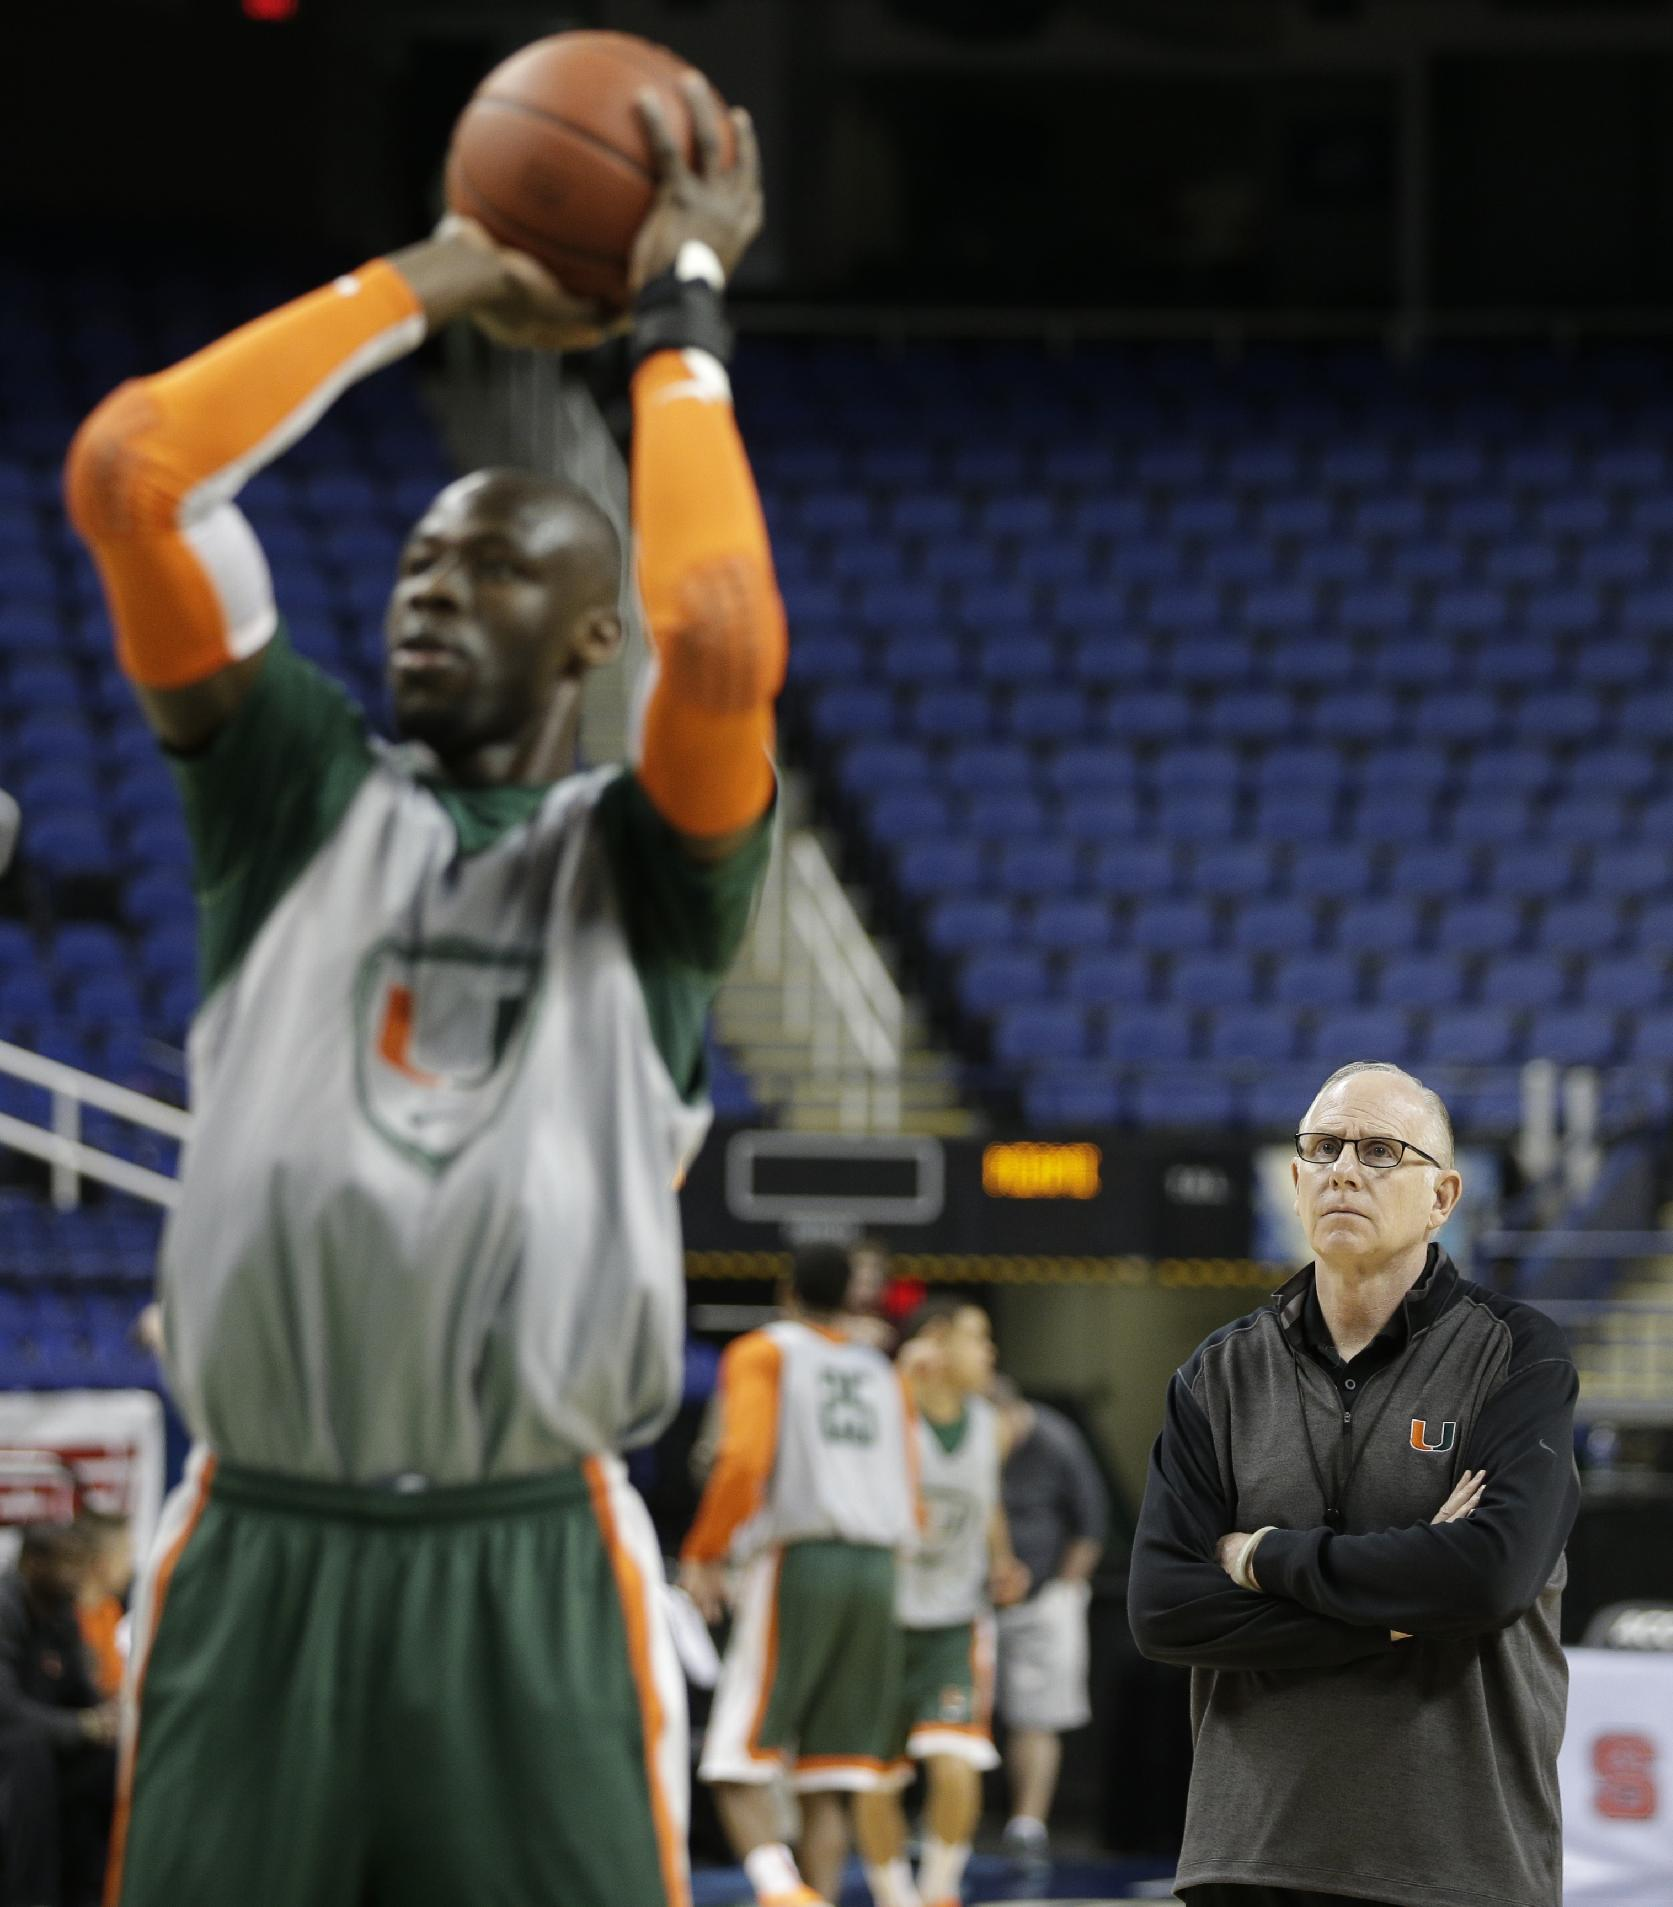 Miami head coach Jim Larranaga, right, watches as Tonye Jekiri , left, takes a shot during an NCAA college basketball practice at the Atlantic Coast Conference tournament in Greensboro, N.C., Tuesday, March 11, 2014. Miami plays against Virginia Tech in a first round game on Wednesday